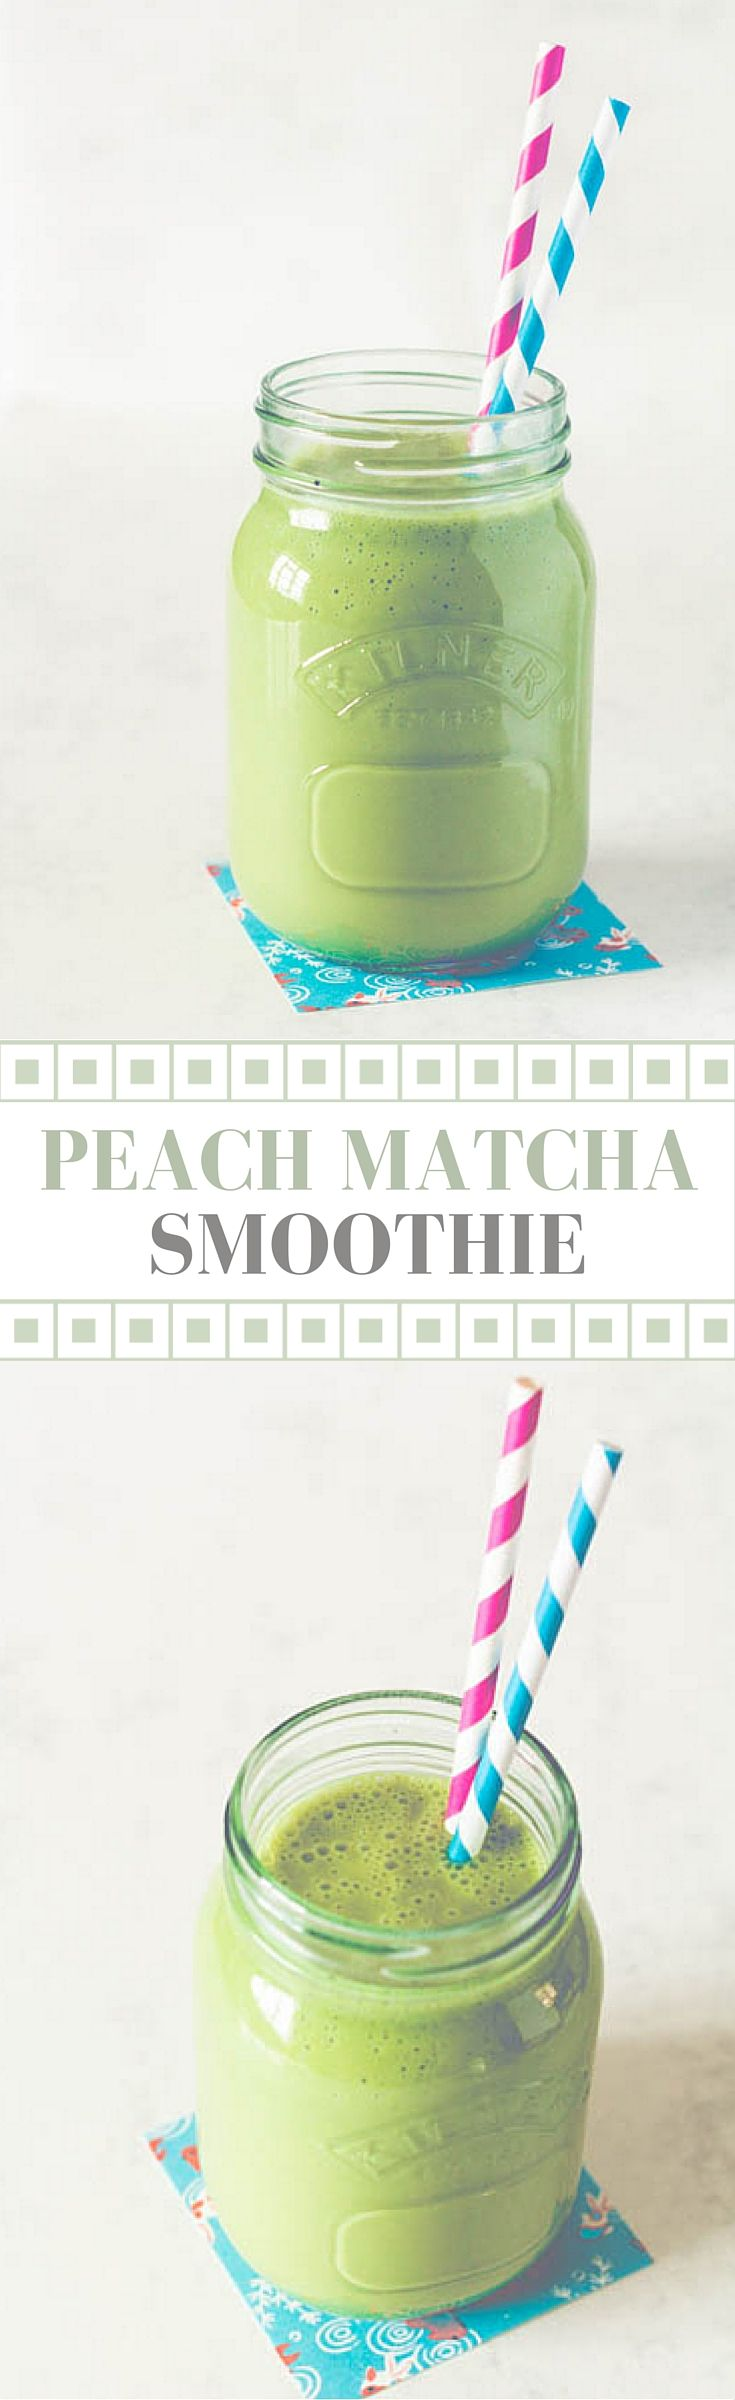 Peach matcha smoothie recipes from a pantry